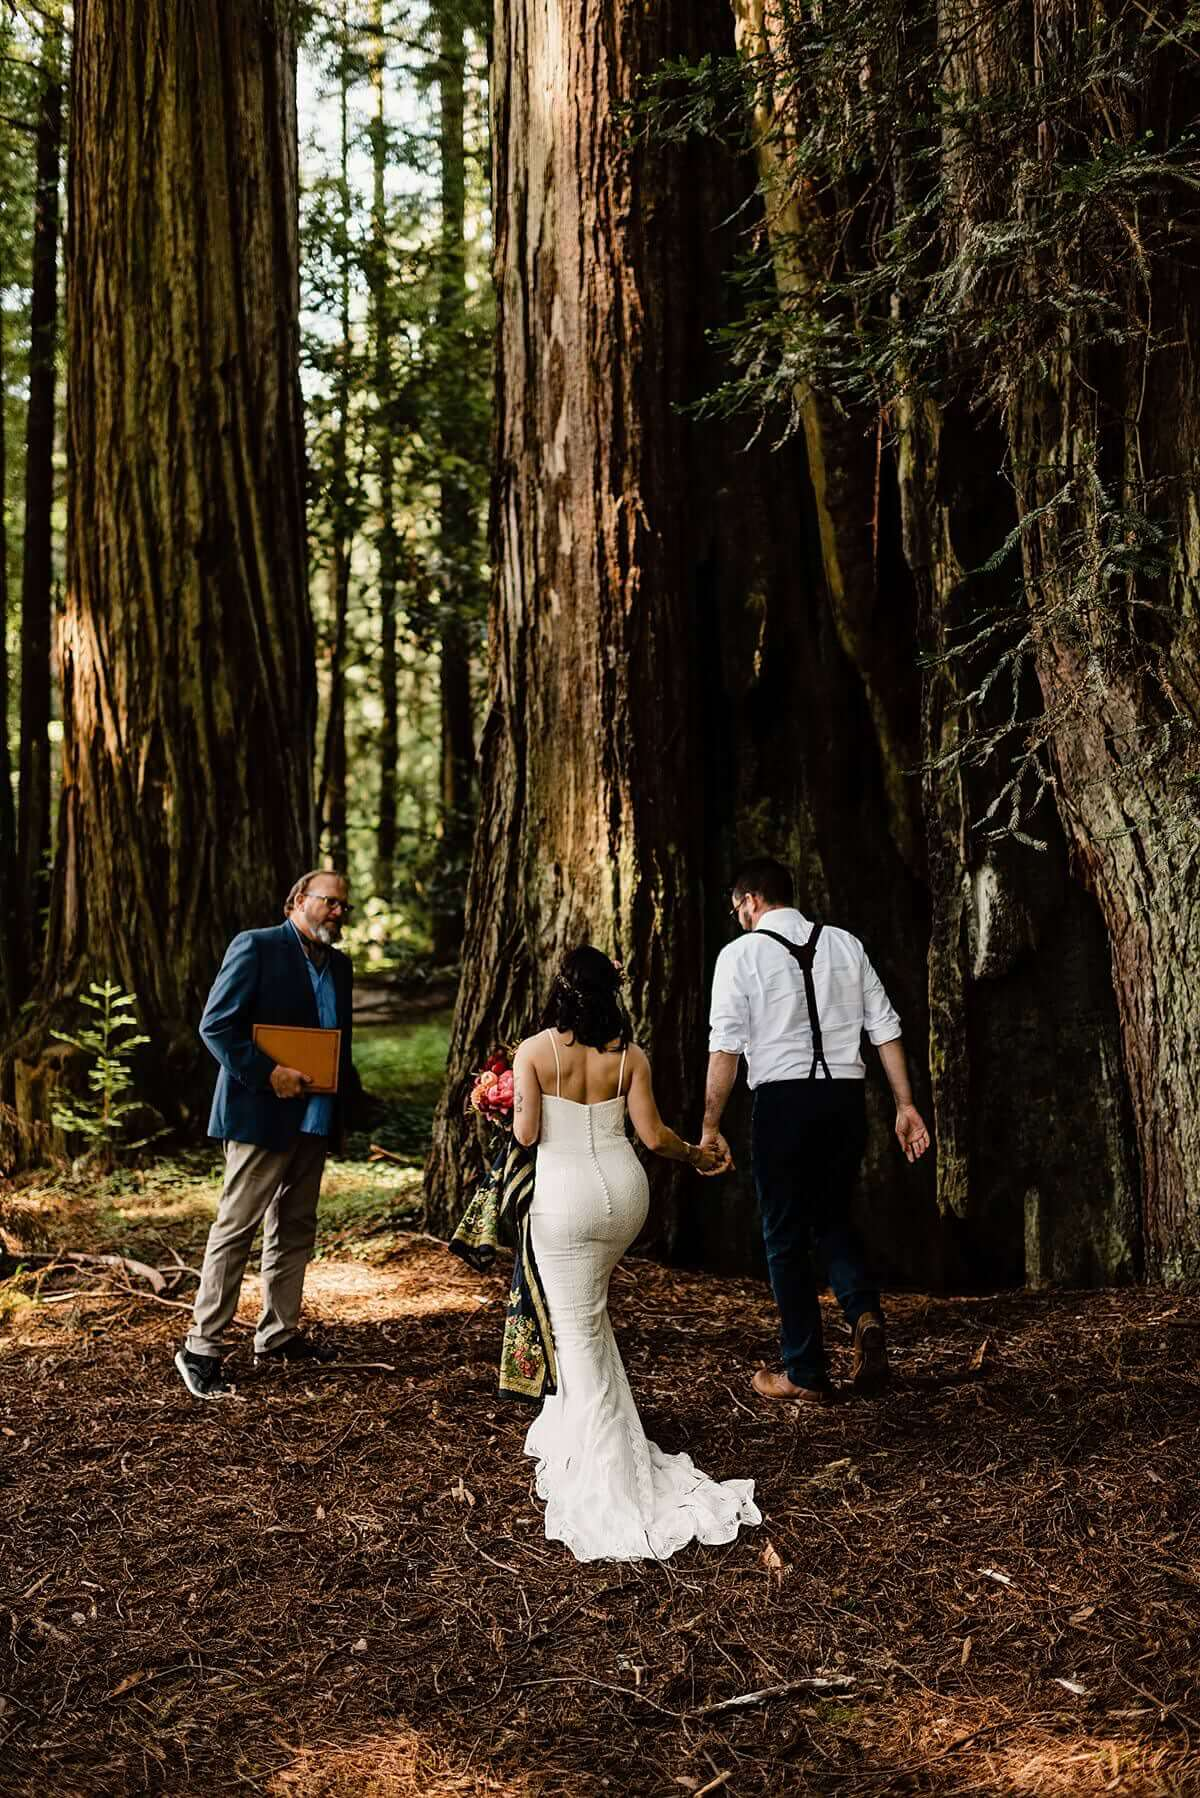 Allison-Brooks-Jedediah-Smiith-Redwoods-Adventure-Elopement-Wedding-S-Photography-Blog_0014.jpg